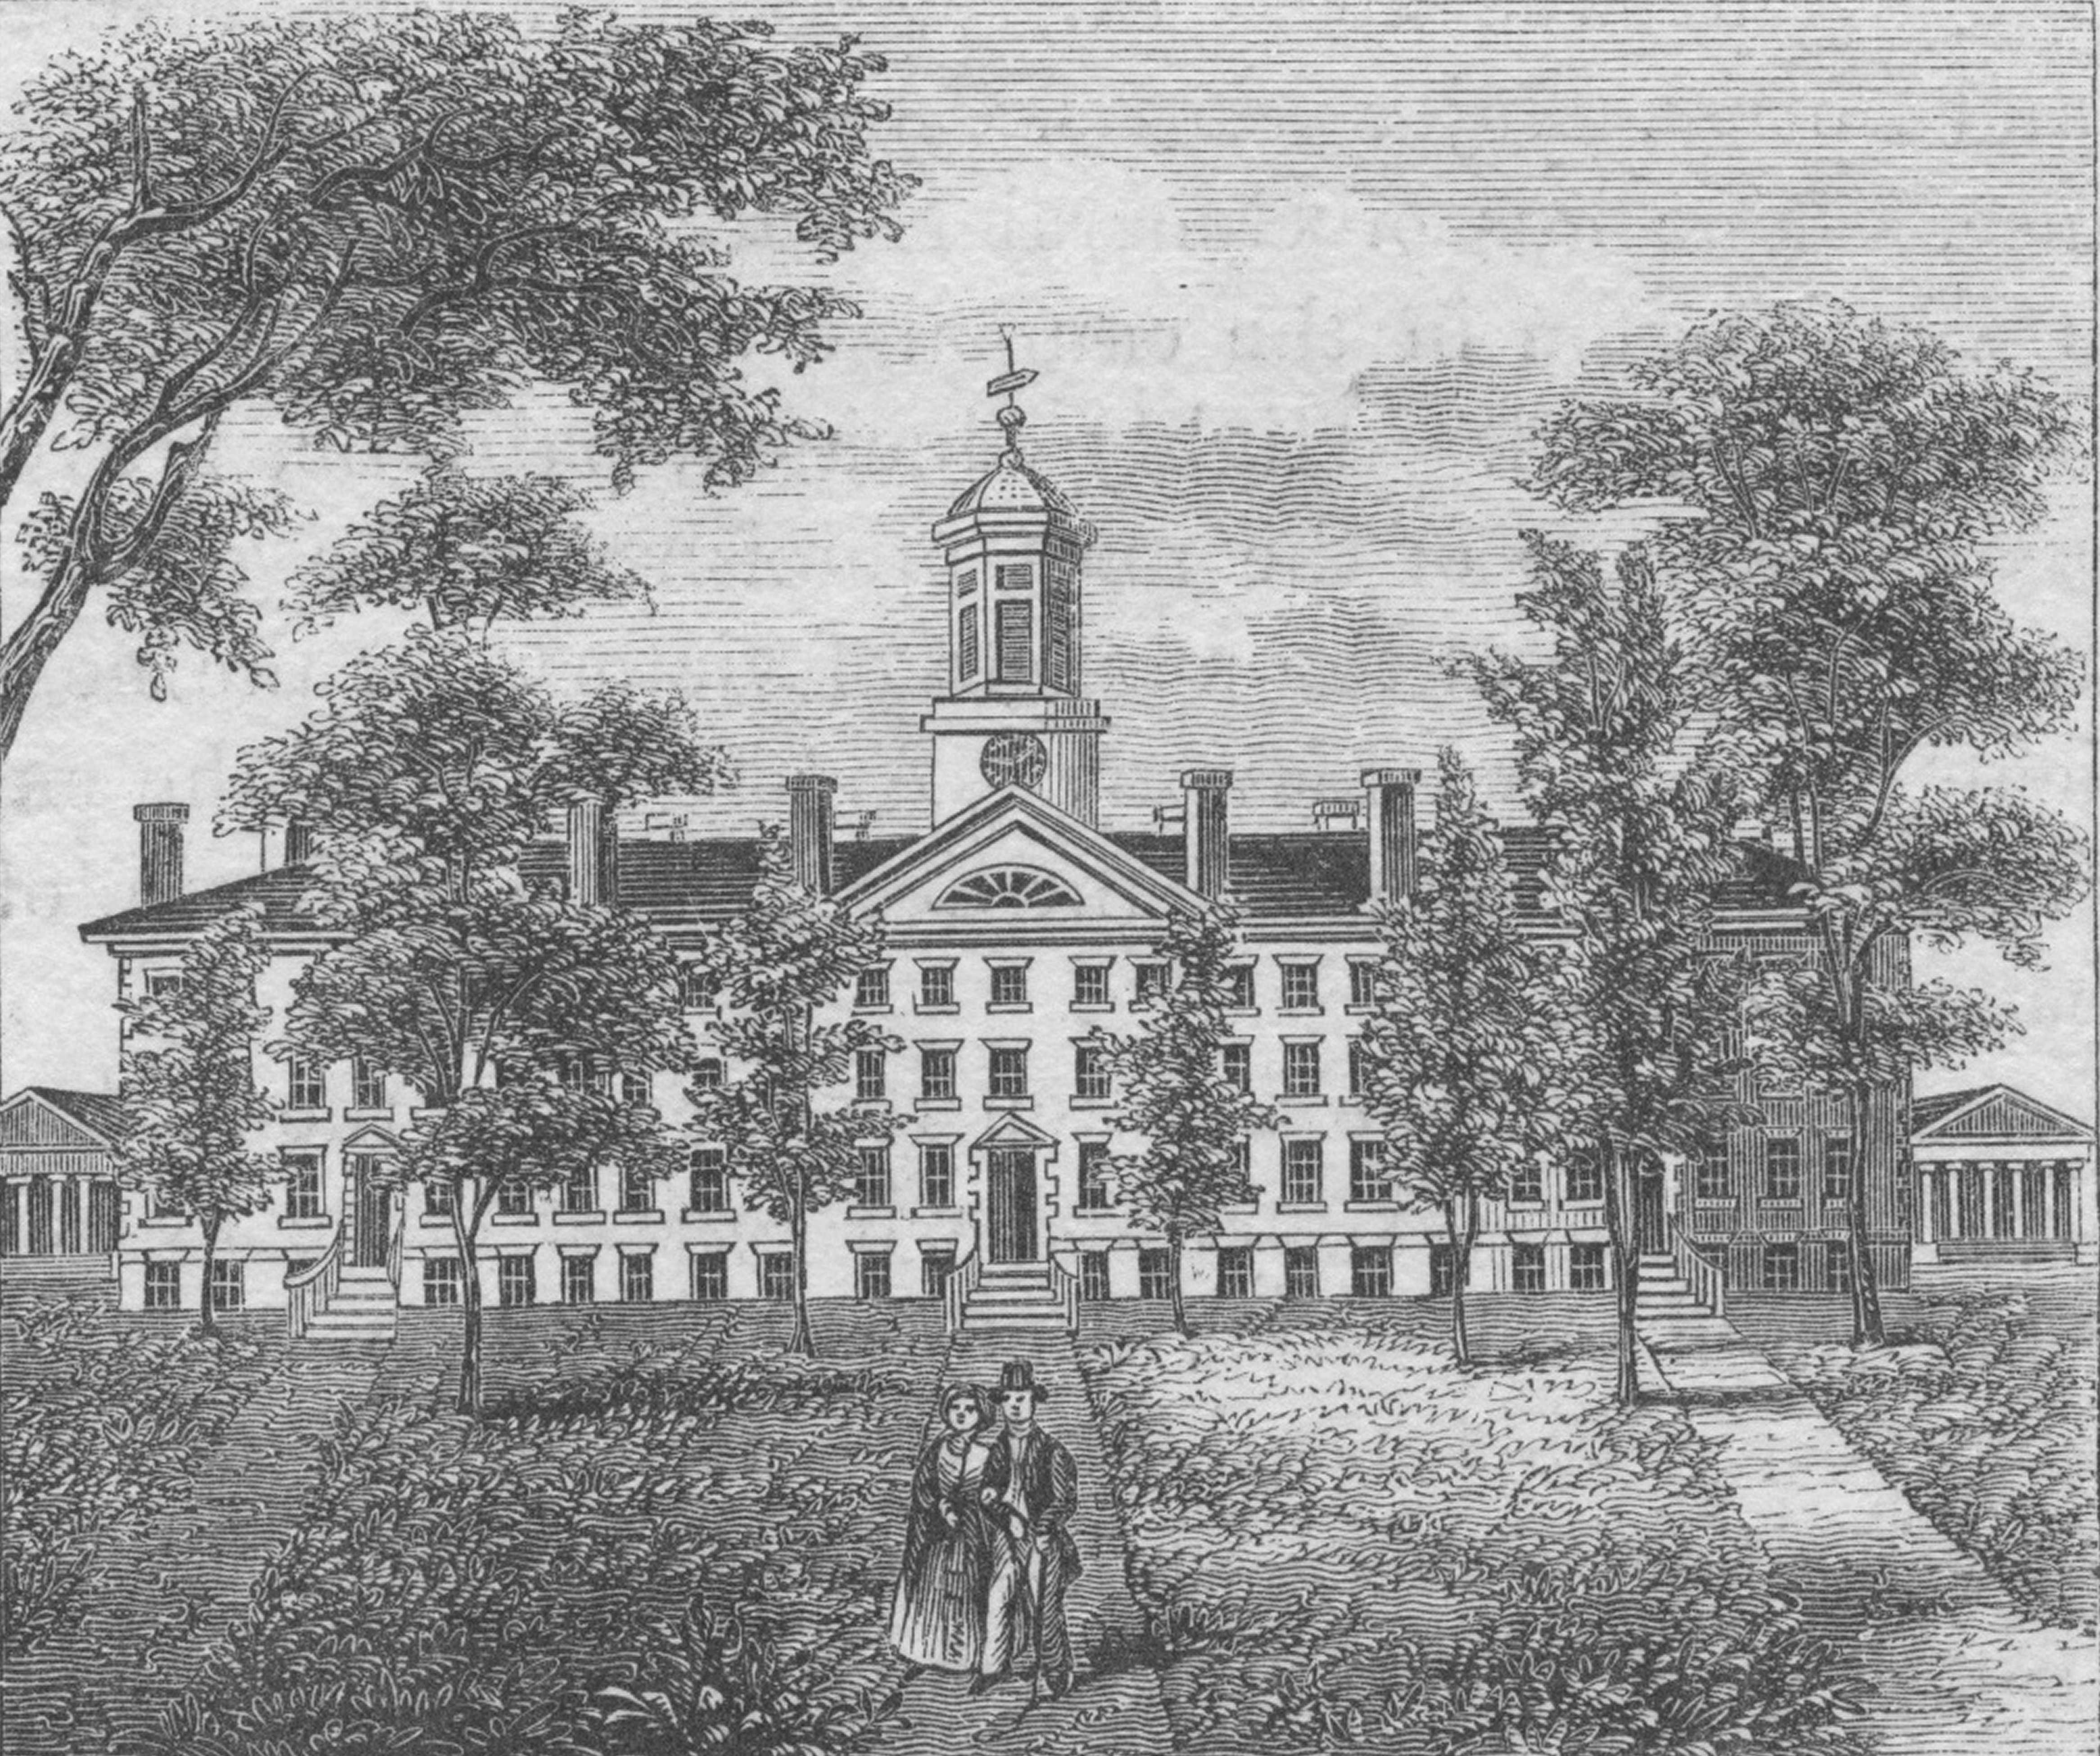 An engraving (circa 1800) depicting the exterior of Nassau Hall at Princeton University, which was constructed in 1756 and is the oldest building on the campus.